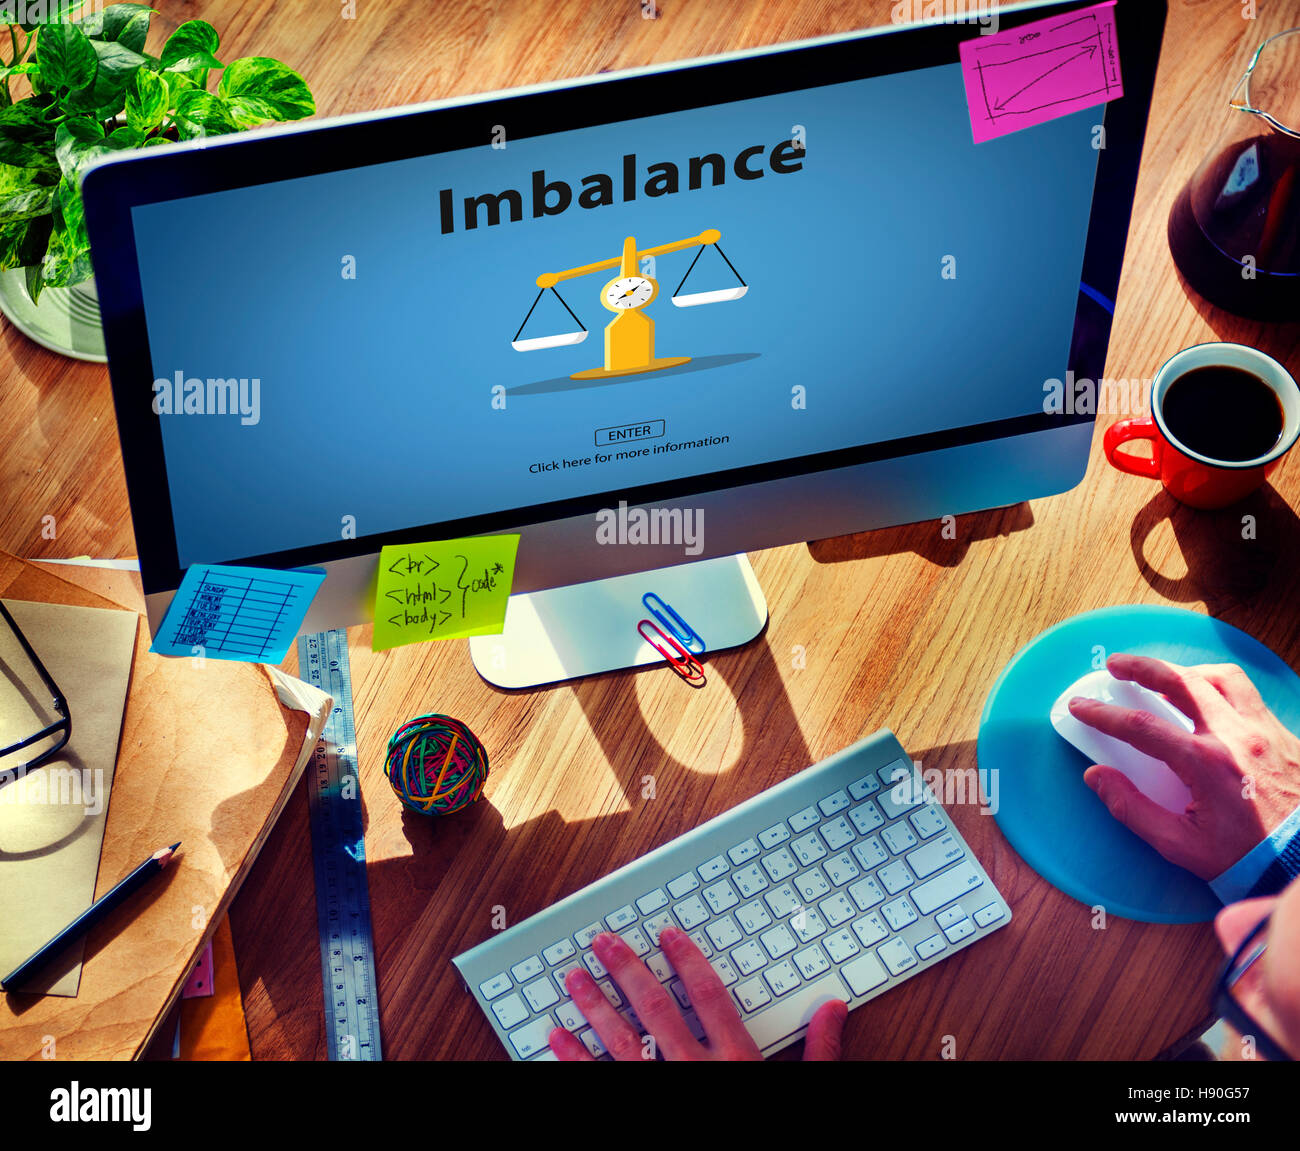 Imbalance Choice Comparison Complexity Risk Concept - Stock Image